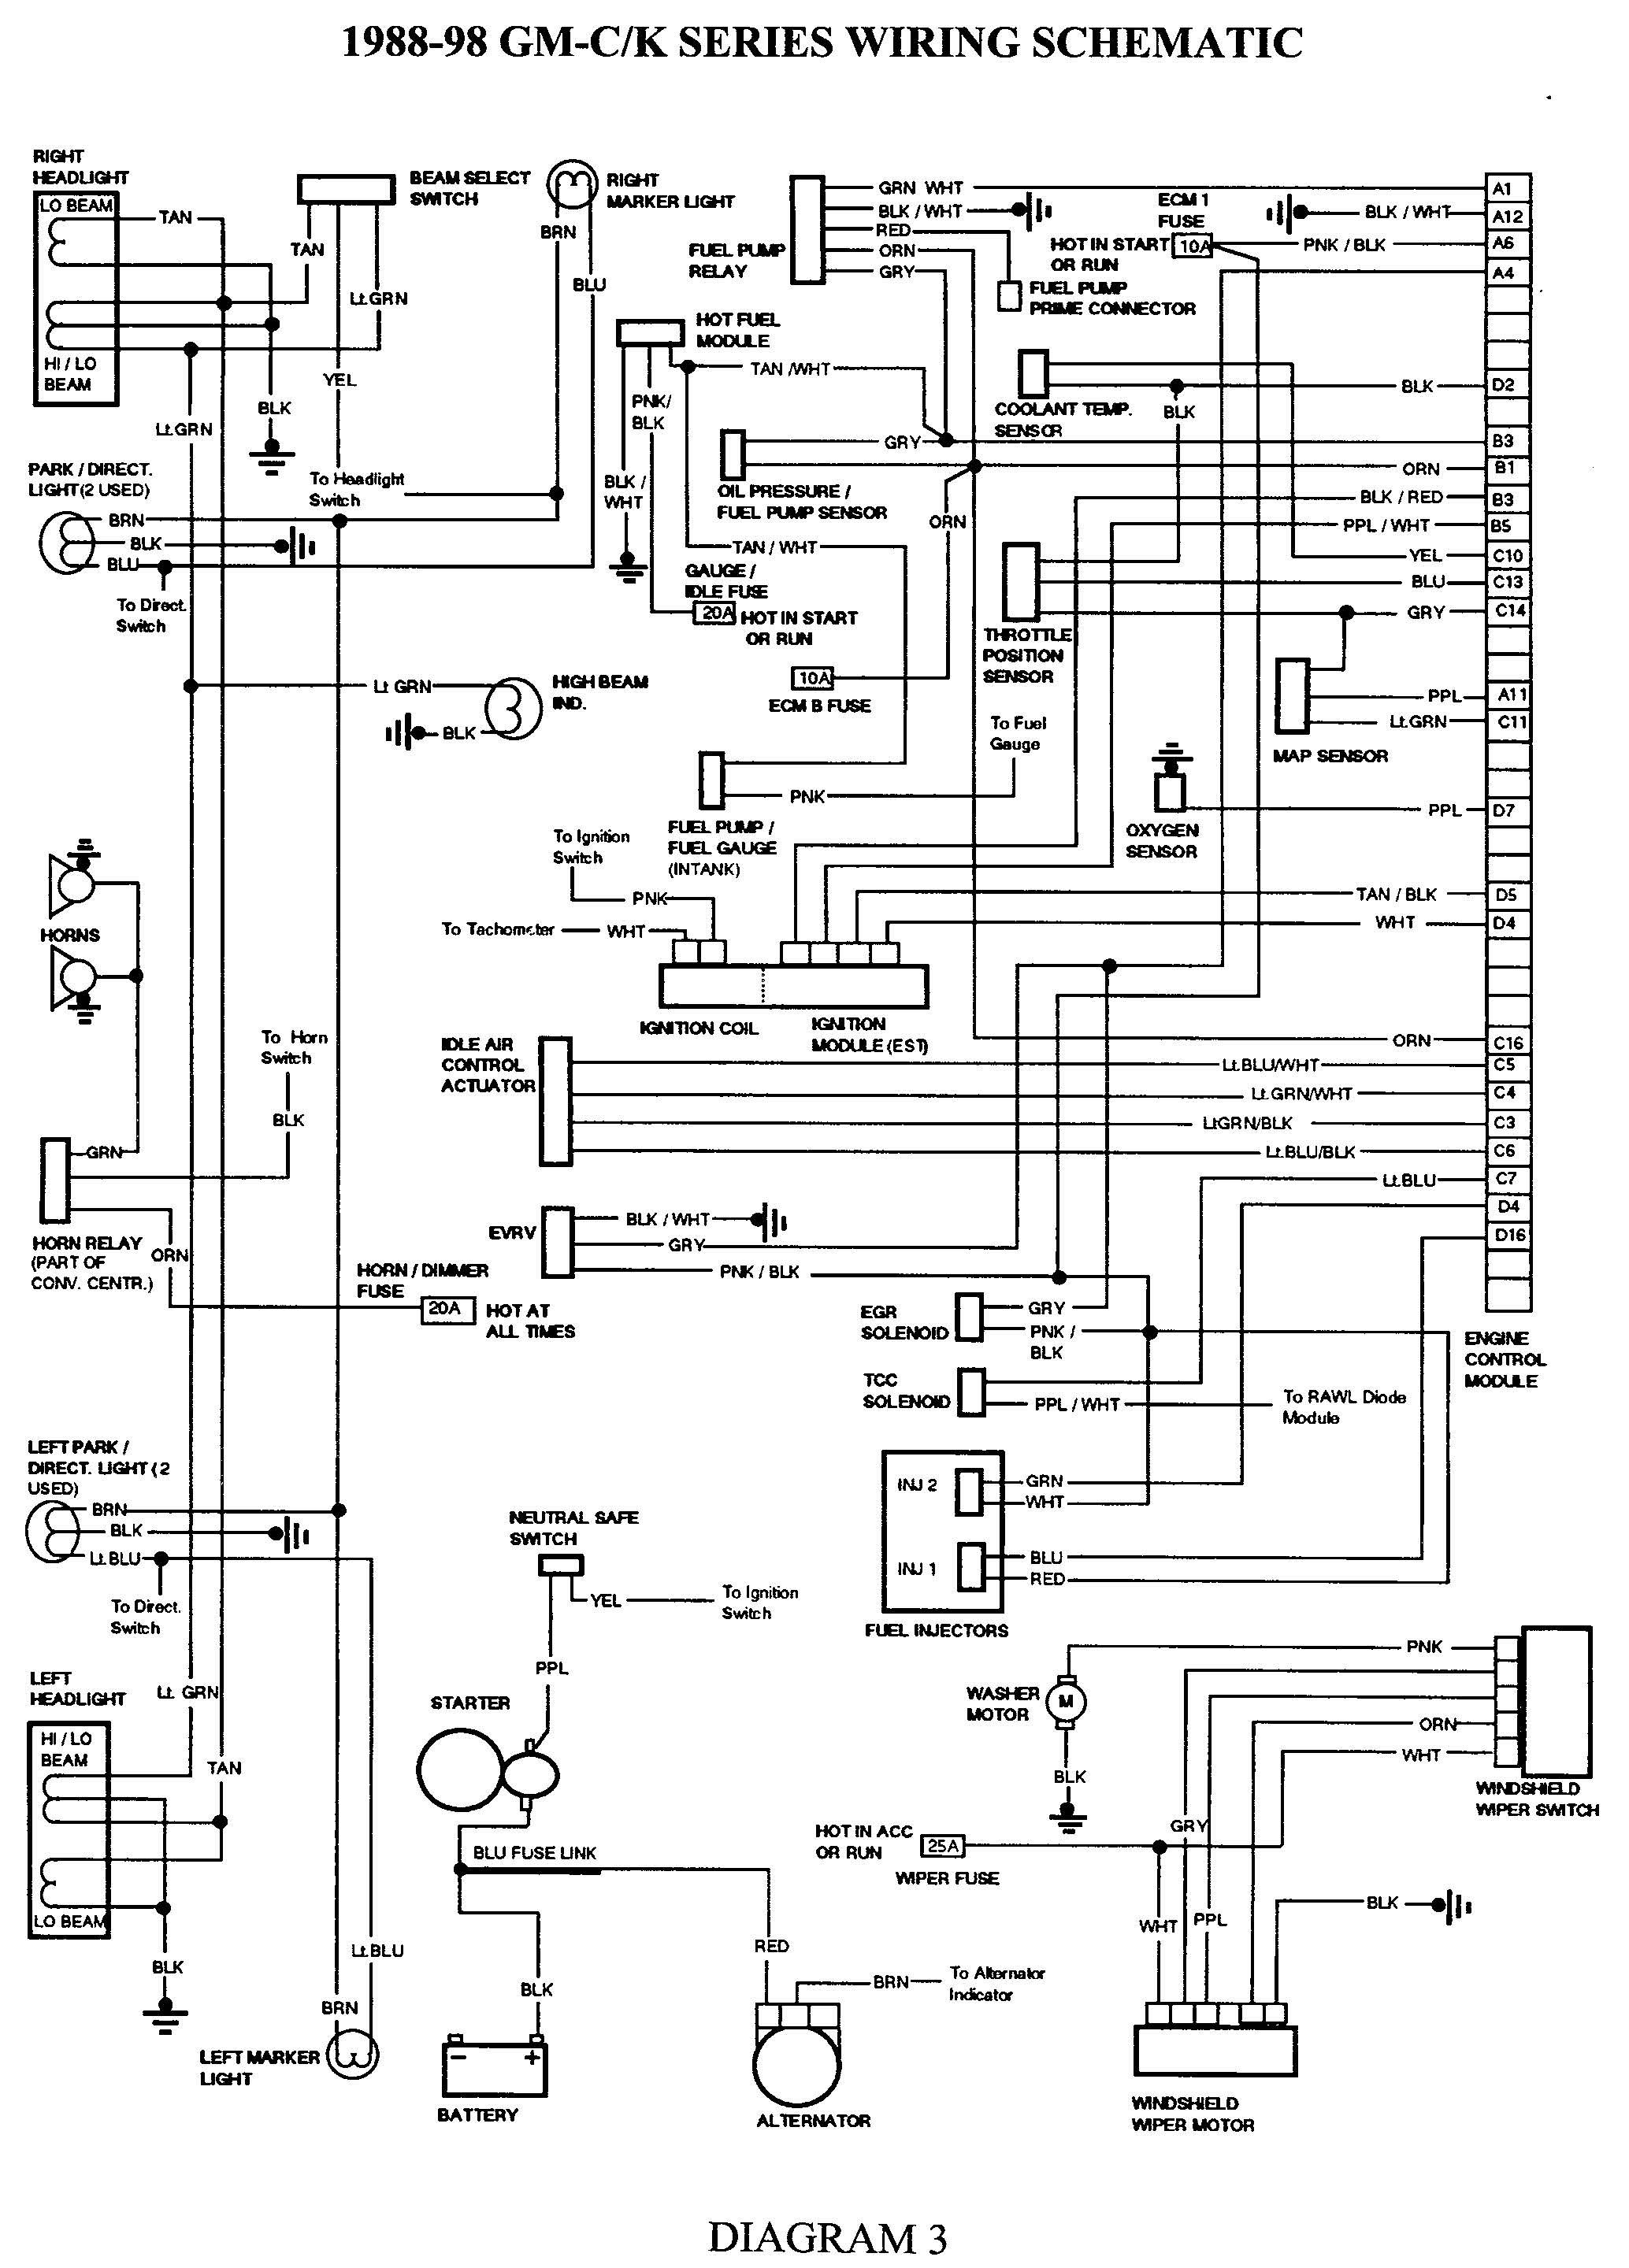 1986 Chevrolet C10 5 7 V8 Engine Wiring Diagram Chevrolet C 1500 94 Chevy  S10 Wiring Diagram 1988 Chevy S10 Pick Up Wiring Diagram